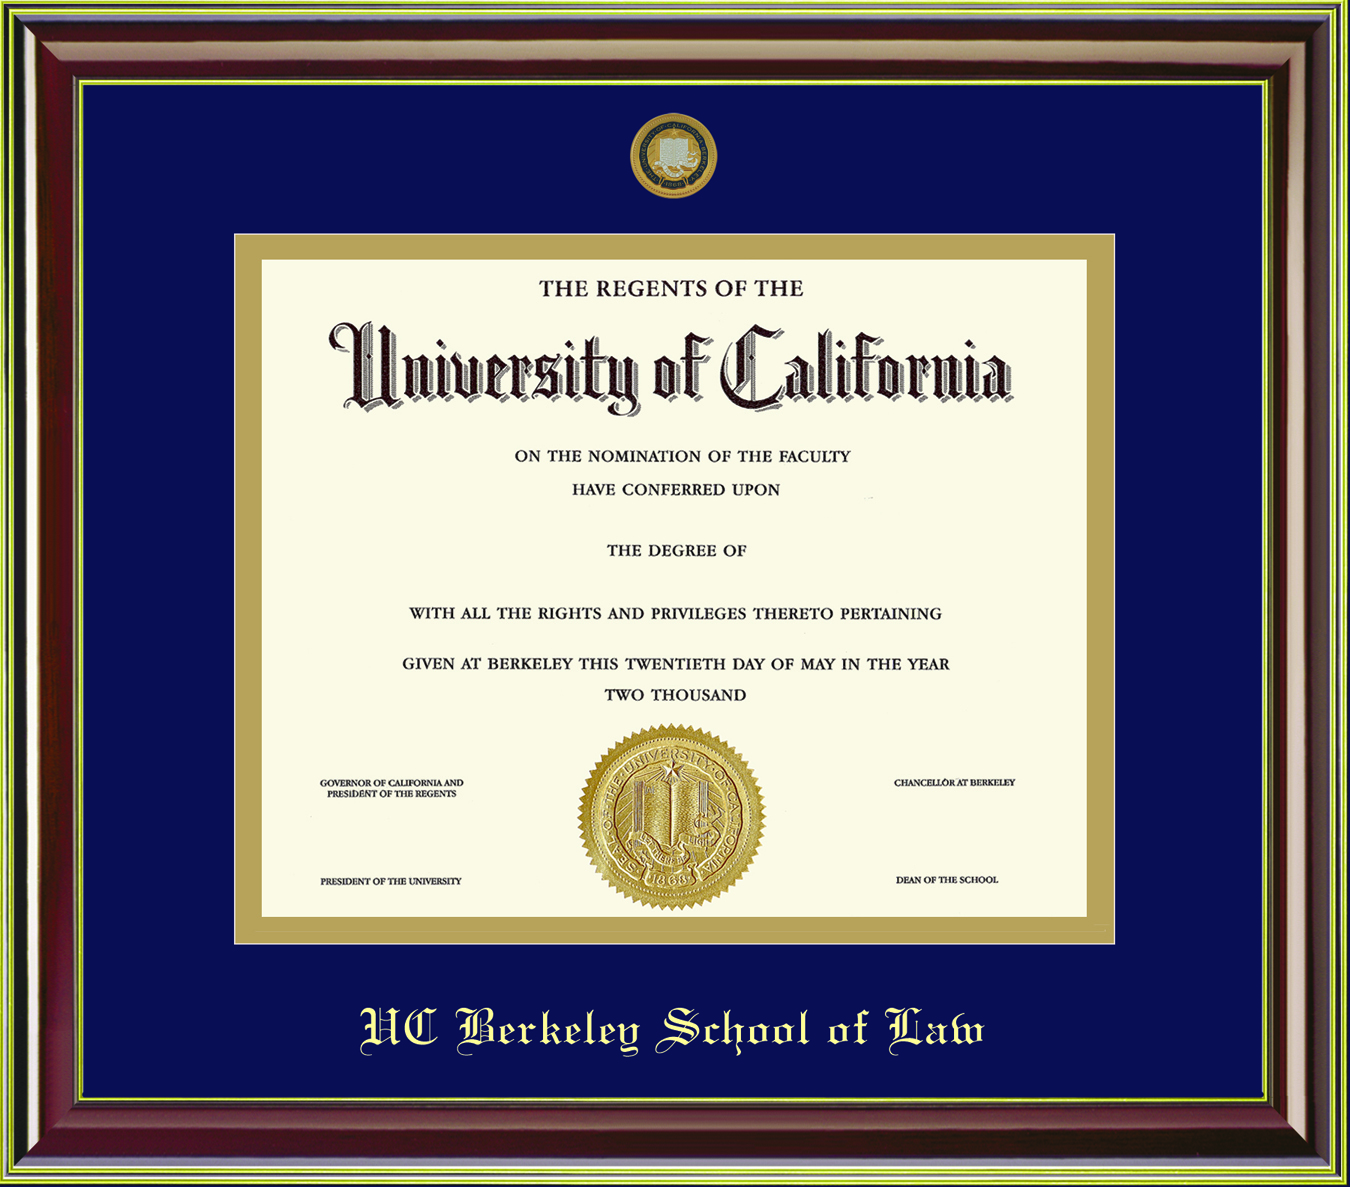 University of California Berkeley Mahogany Gold 11x14 School of Law Diploma Frame